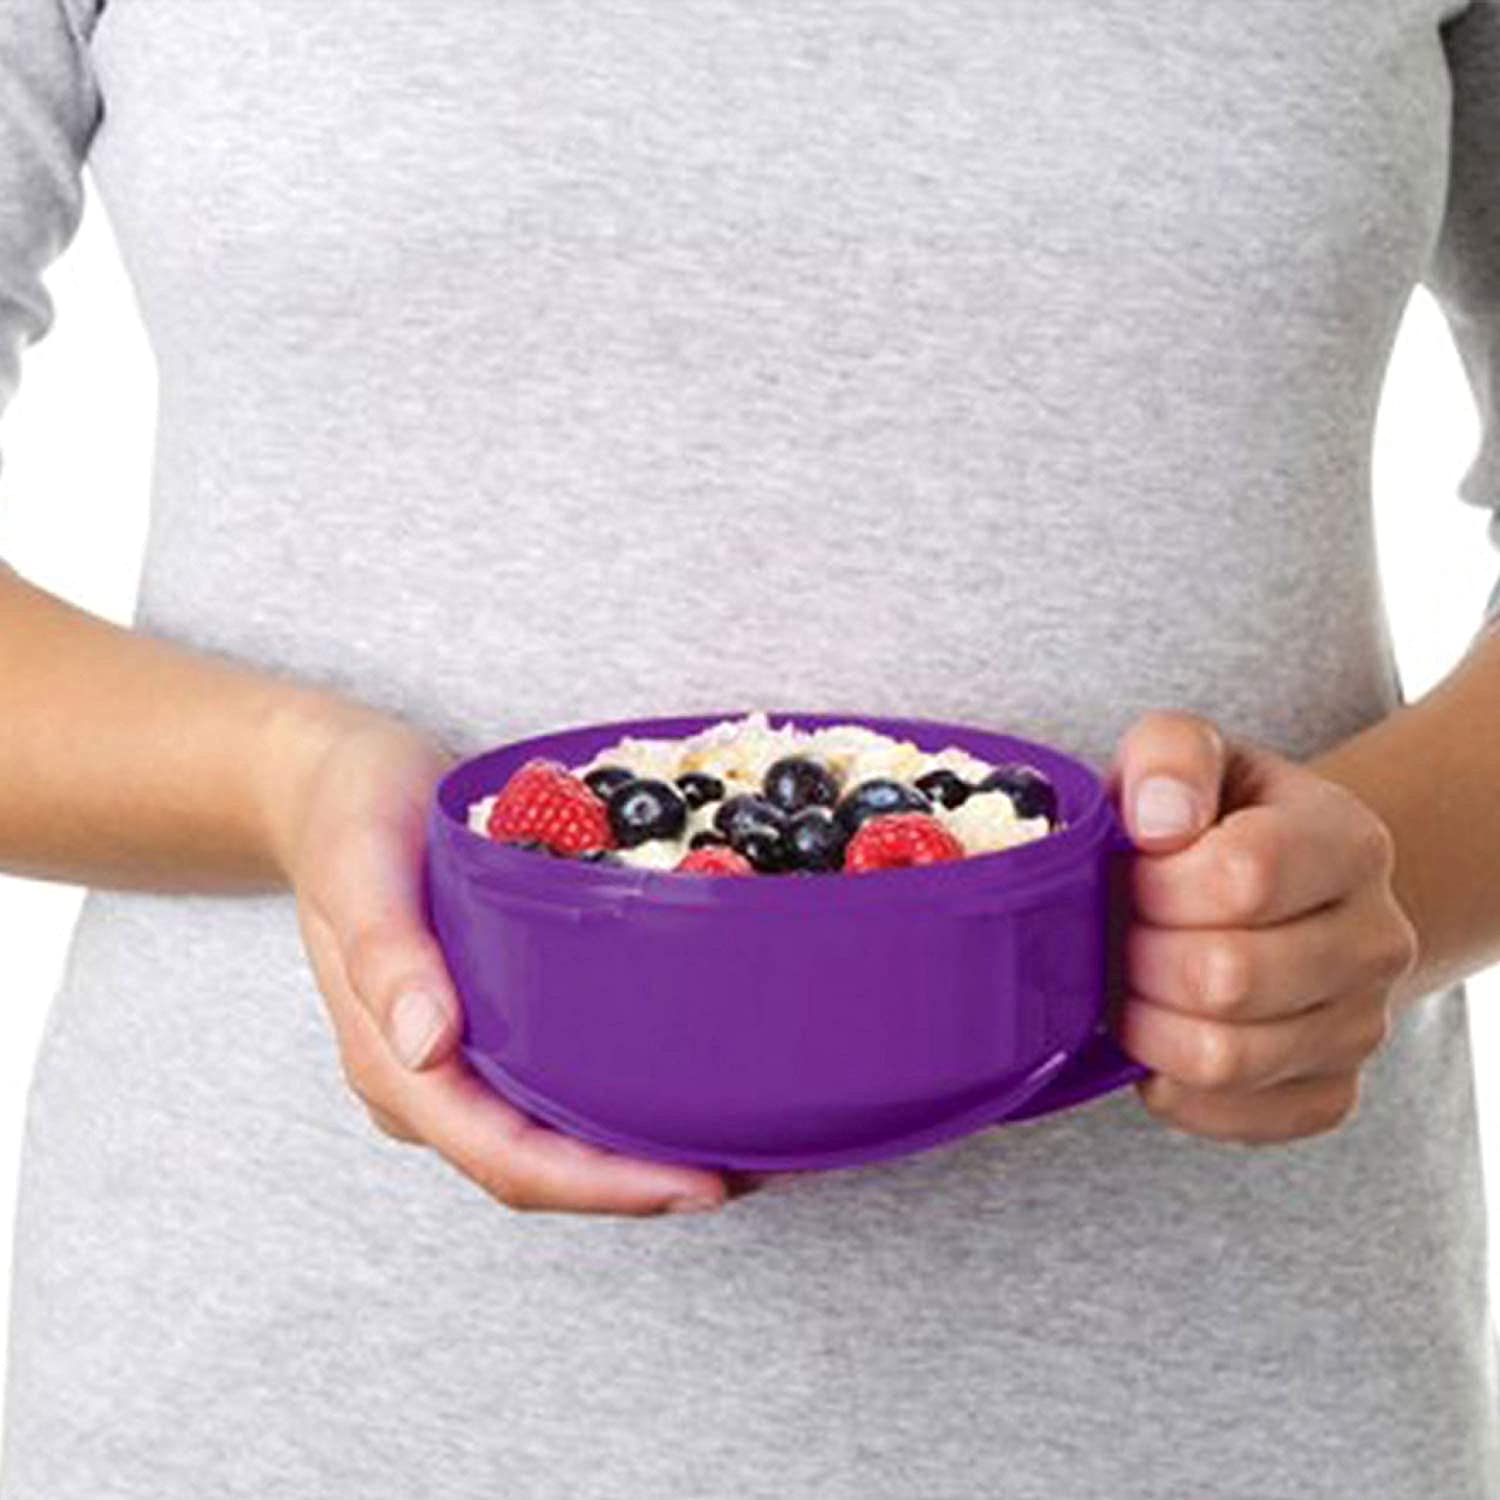 28.7 oz.//0.8 L Color Received May Vary Sistema To Go Collection Microwave Breakfast Bowl